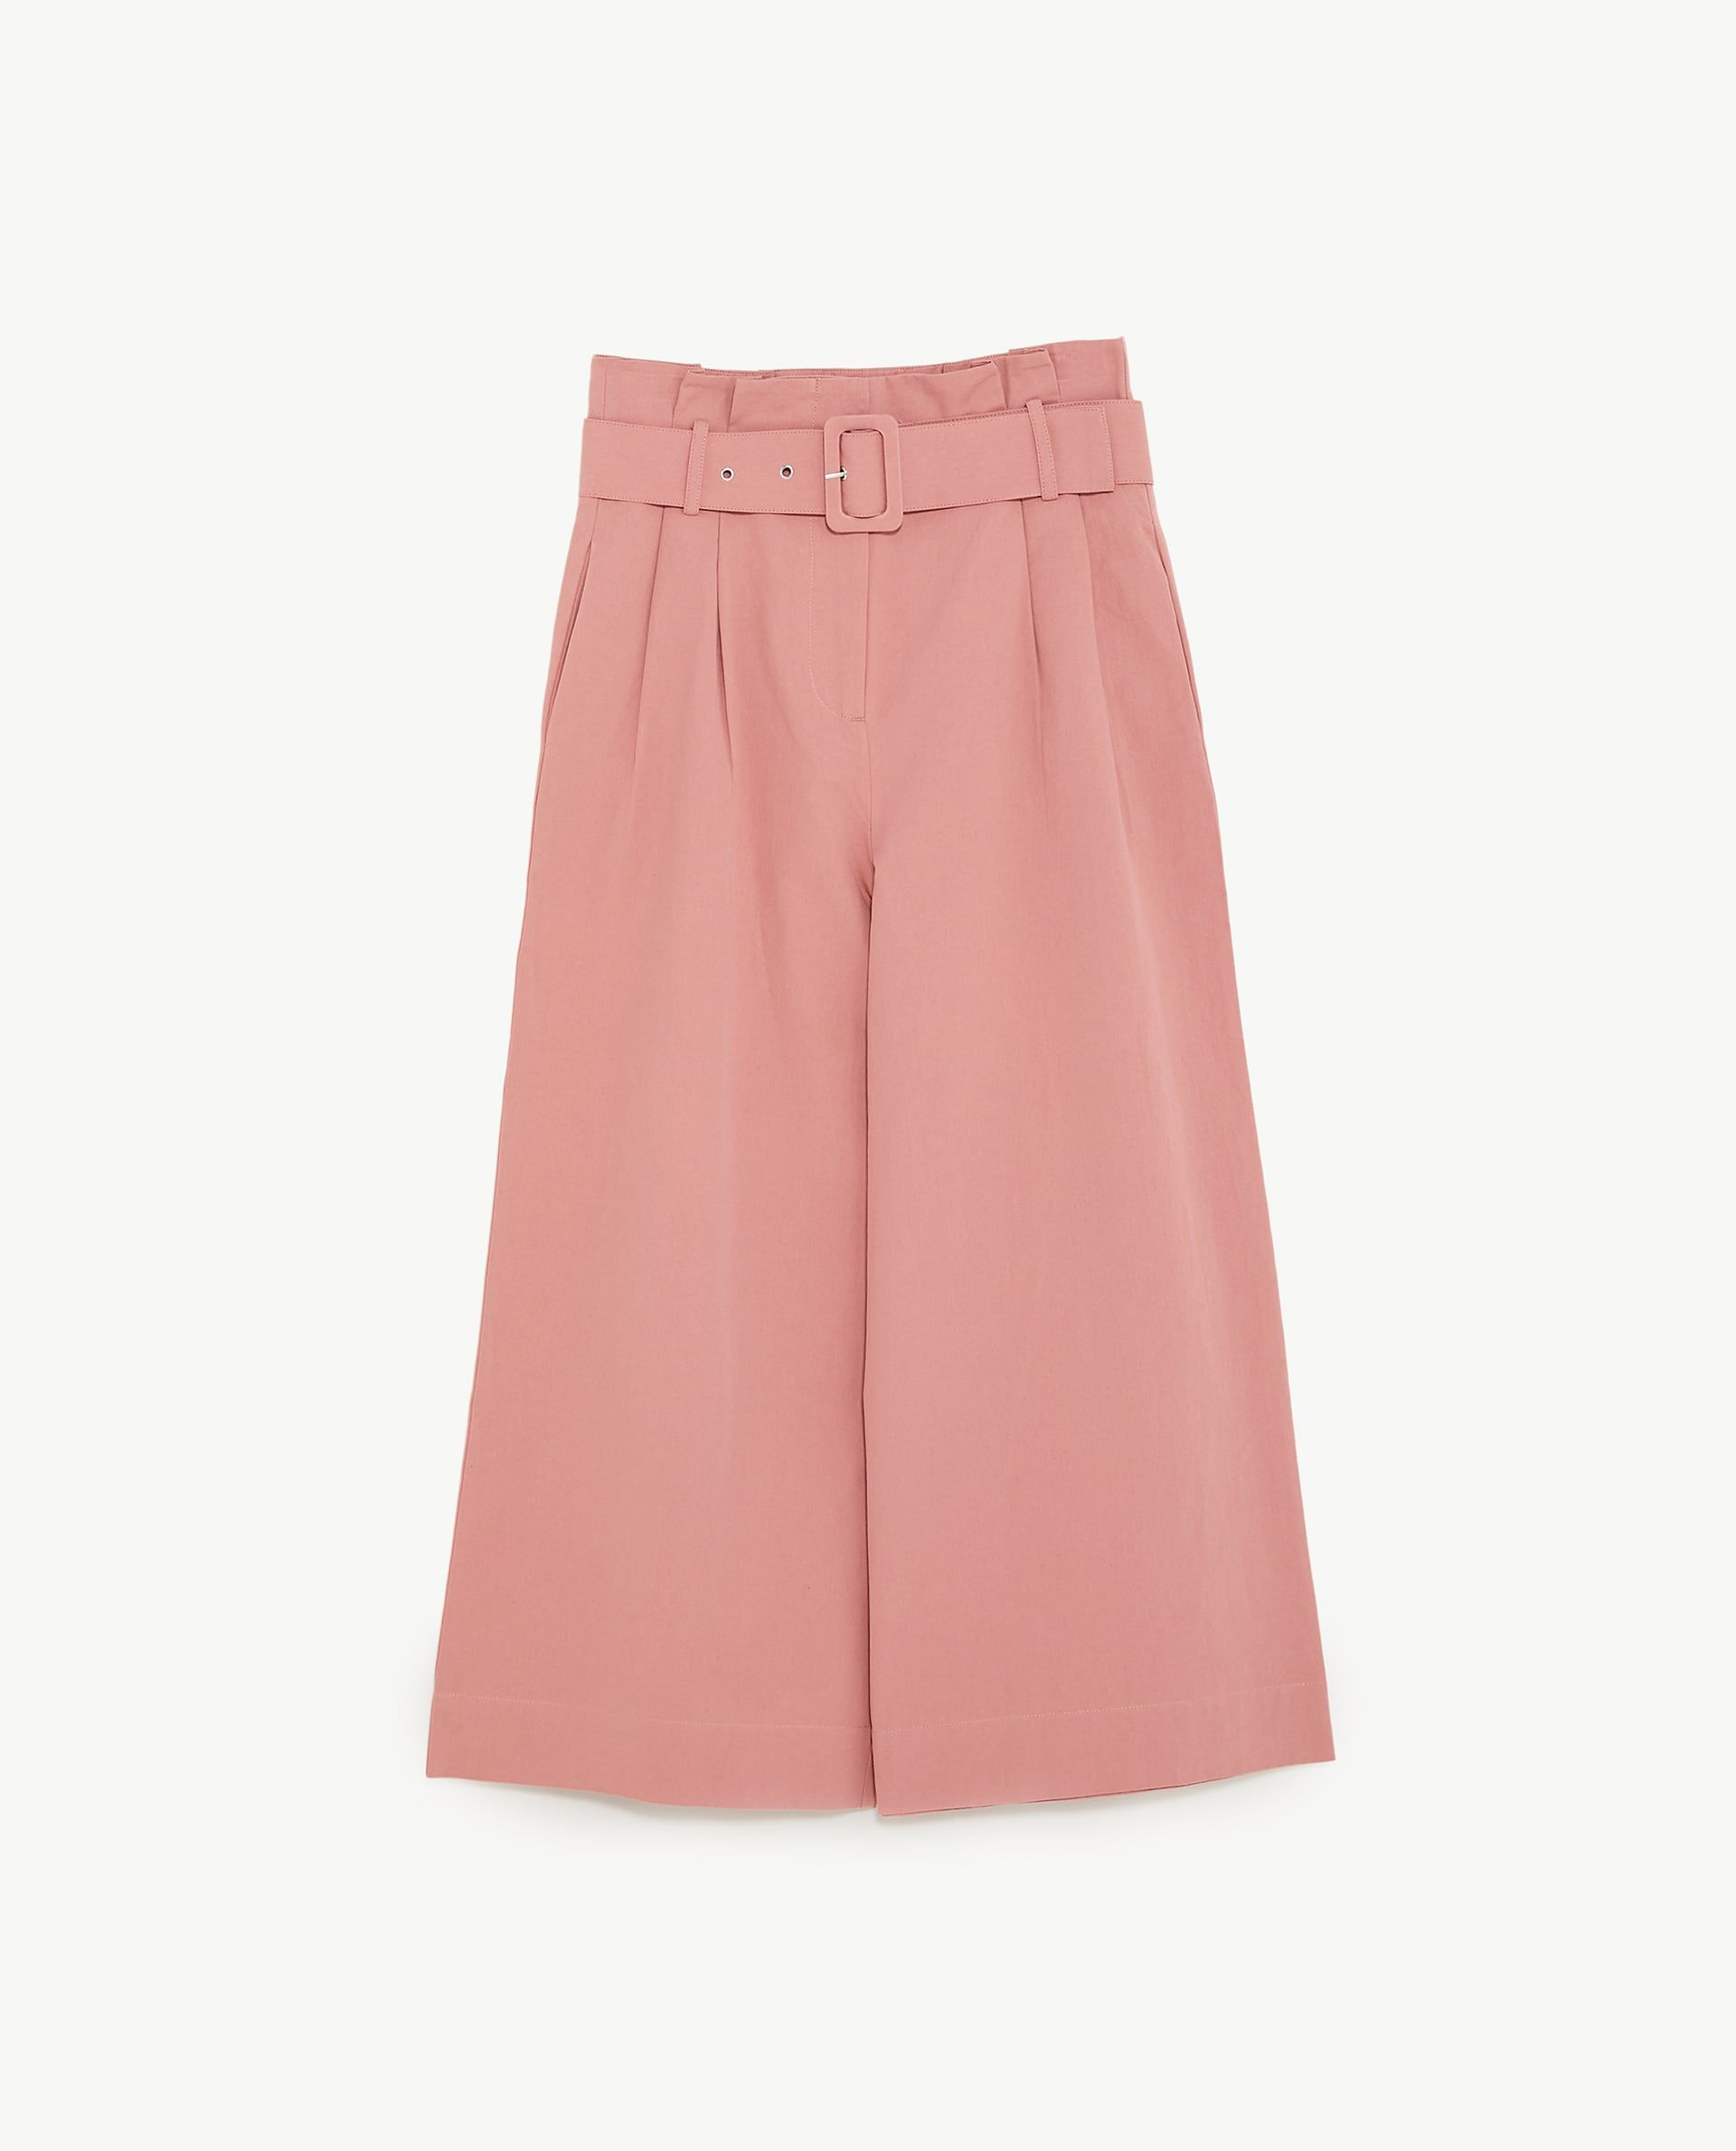 eaaaef10 Image 6 of TROUSERS WITH BELT from Zara Pink Trousers, Trousers Women,  Palazzo Trousers